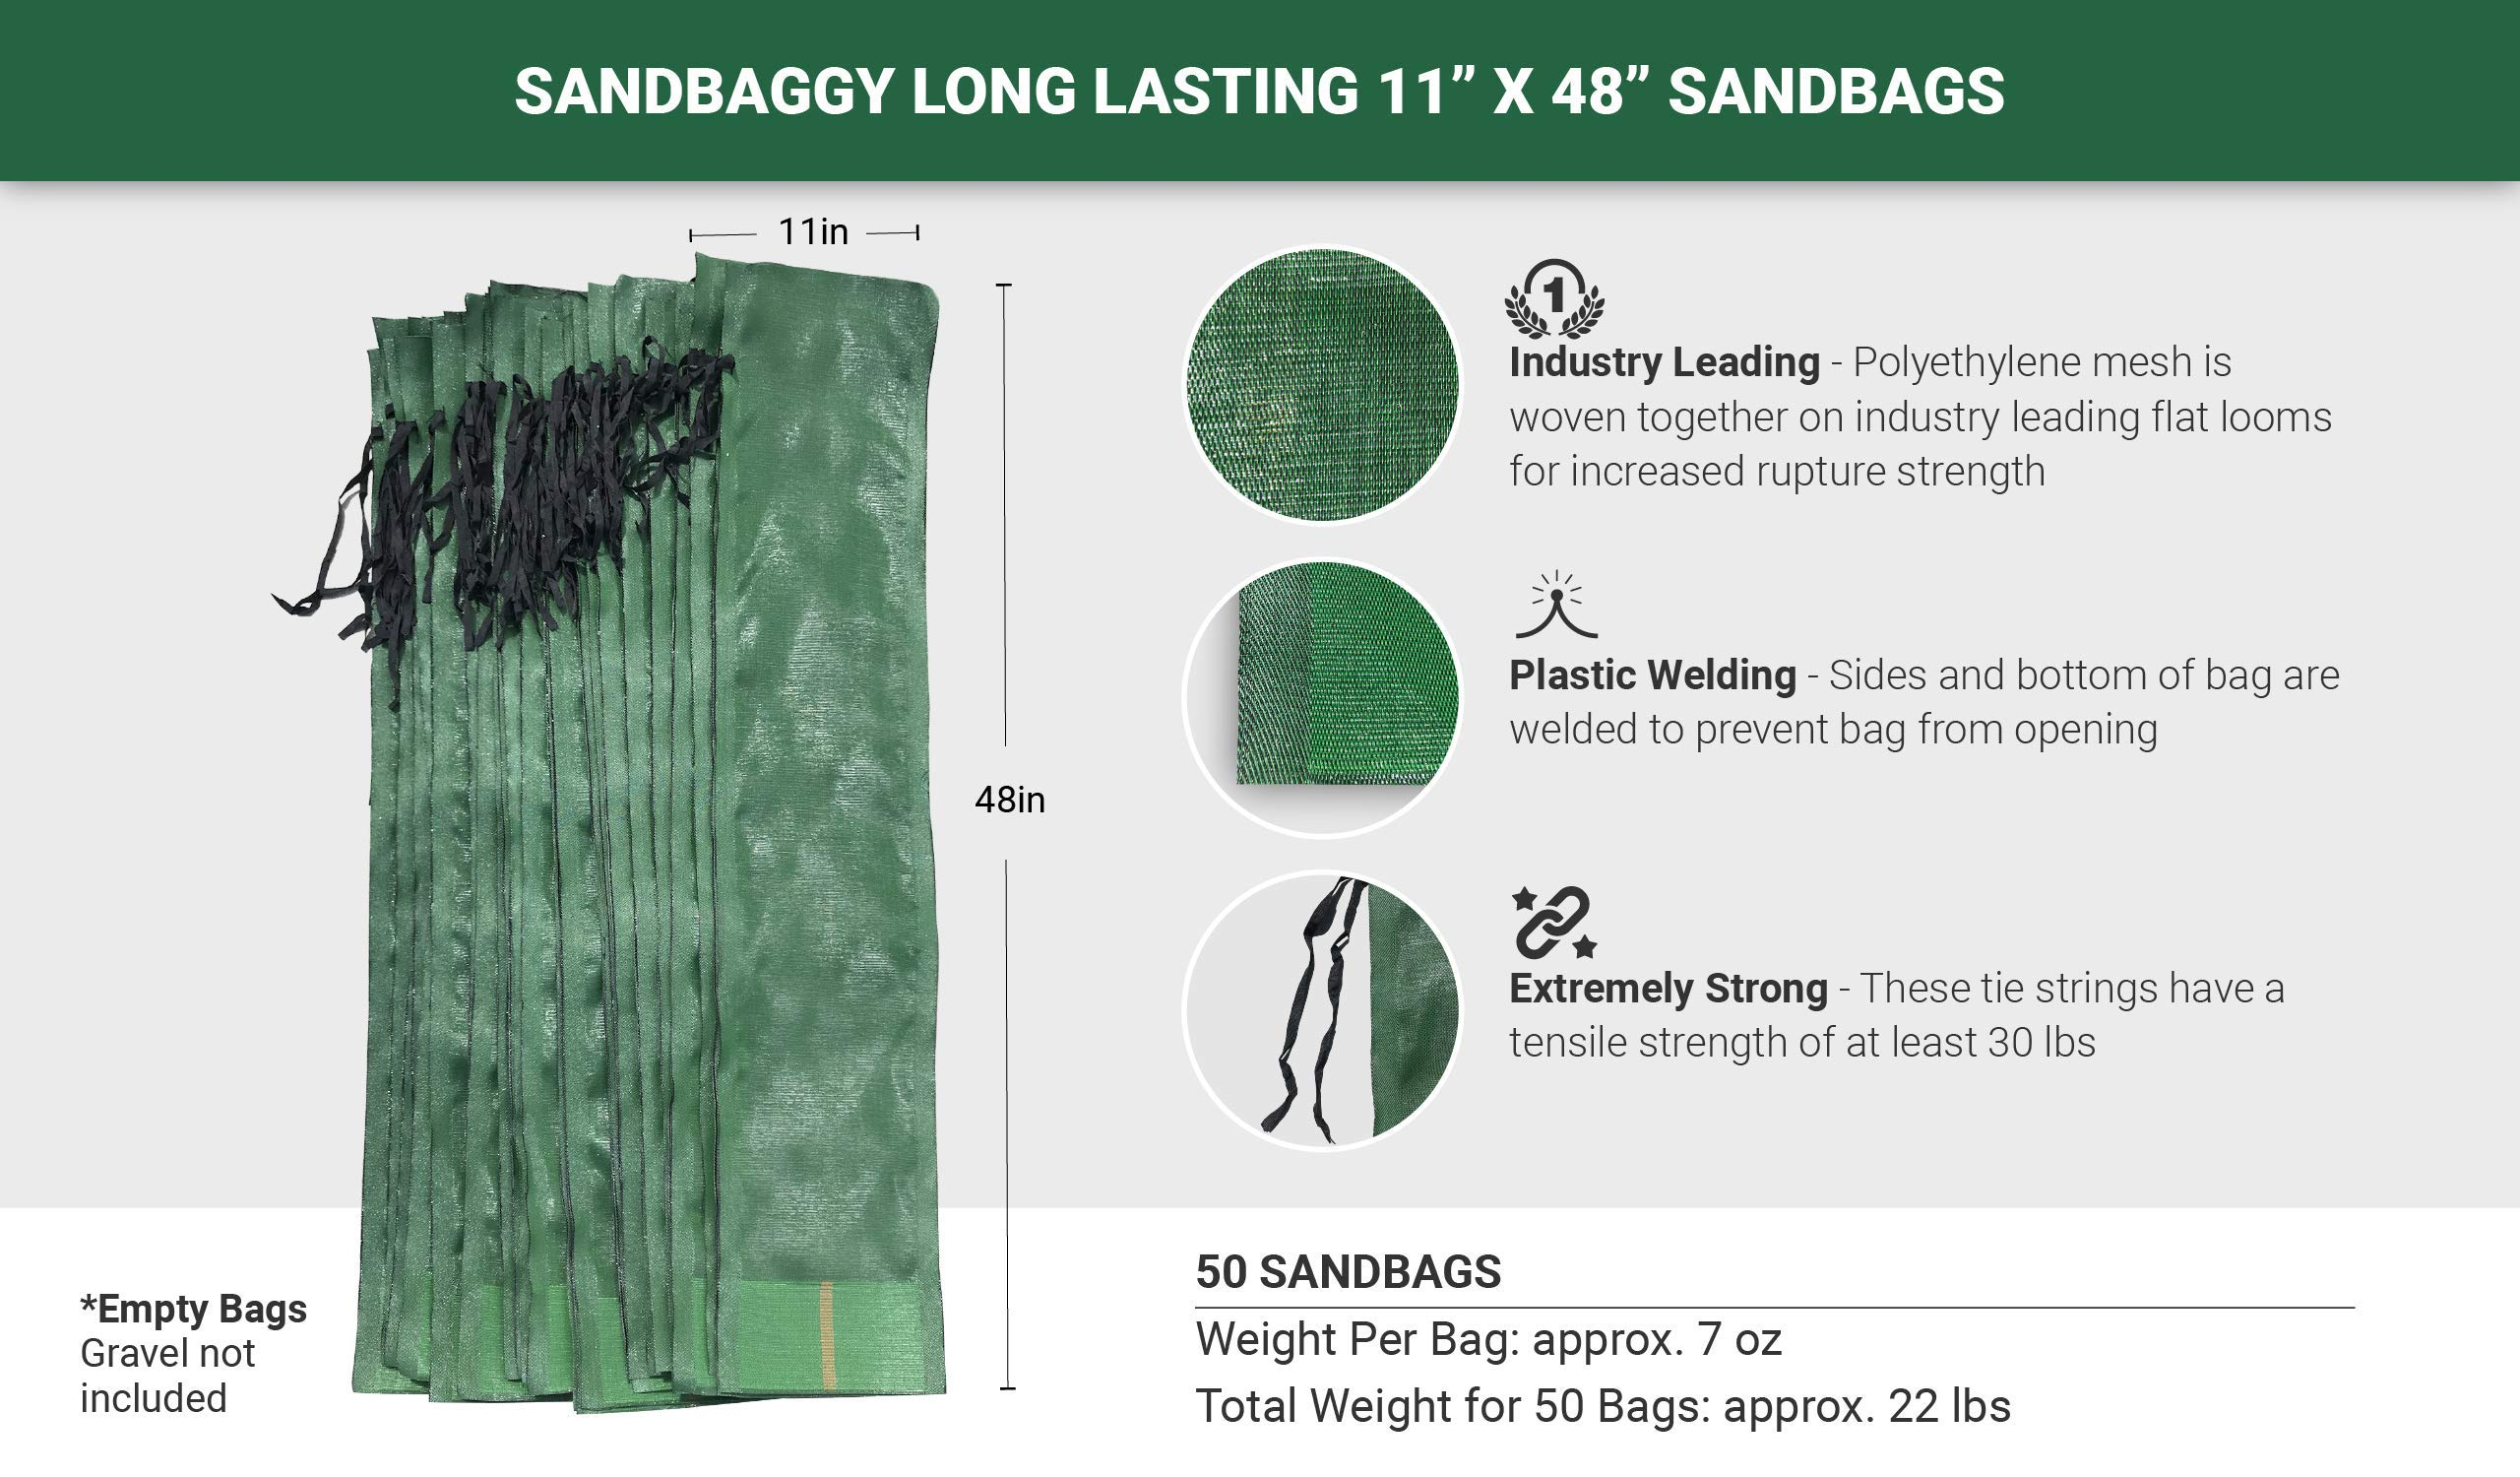 Sandbaggy - 11'' x 48'' Long-Lasting Sandbags - Lasts 1-2 Yrs - Sandbags for Flooding - Monofilament - Sand Bag - Flood Water Barrier - Water Curb - Tent Sandbags - Store Bags (Pack of 50) by Sandbaggy